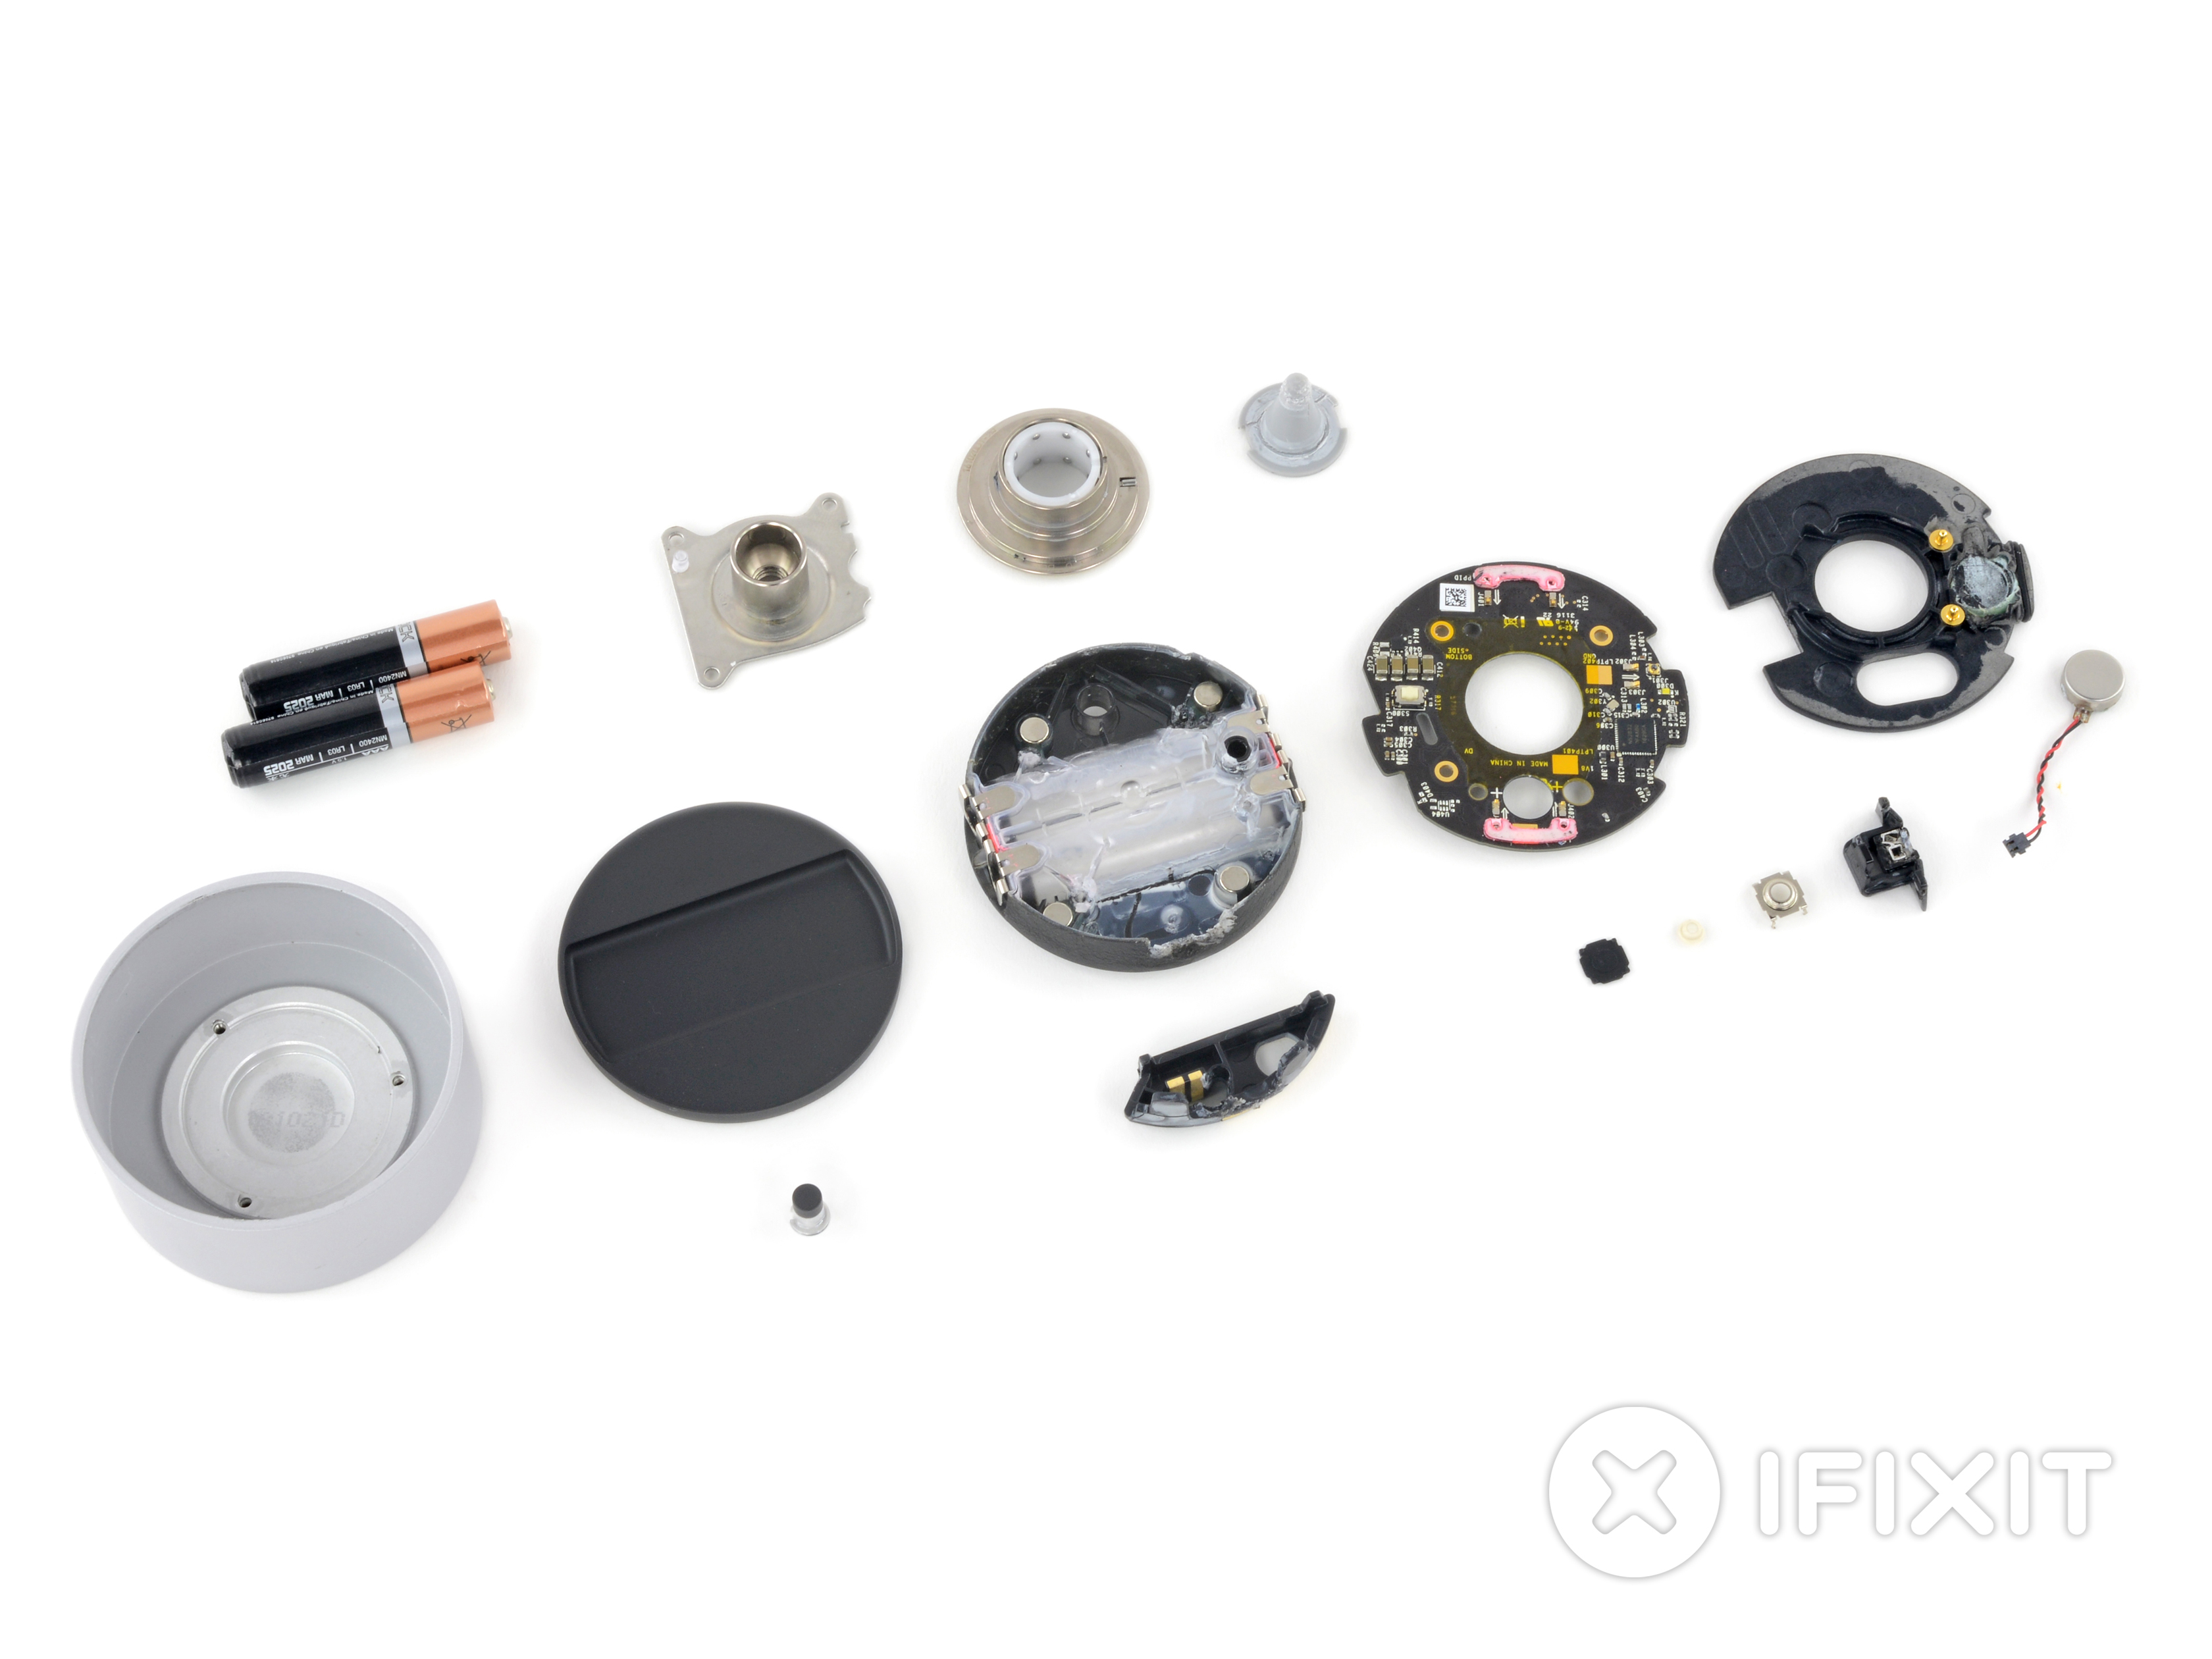 Microsoft Surface Dial iFixit teardown